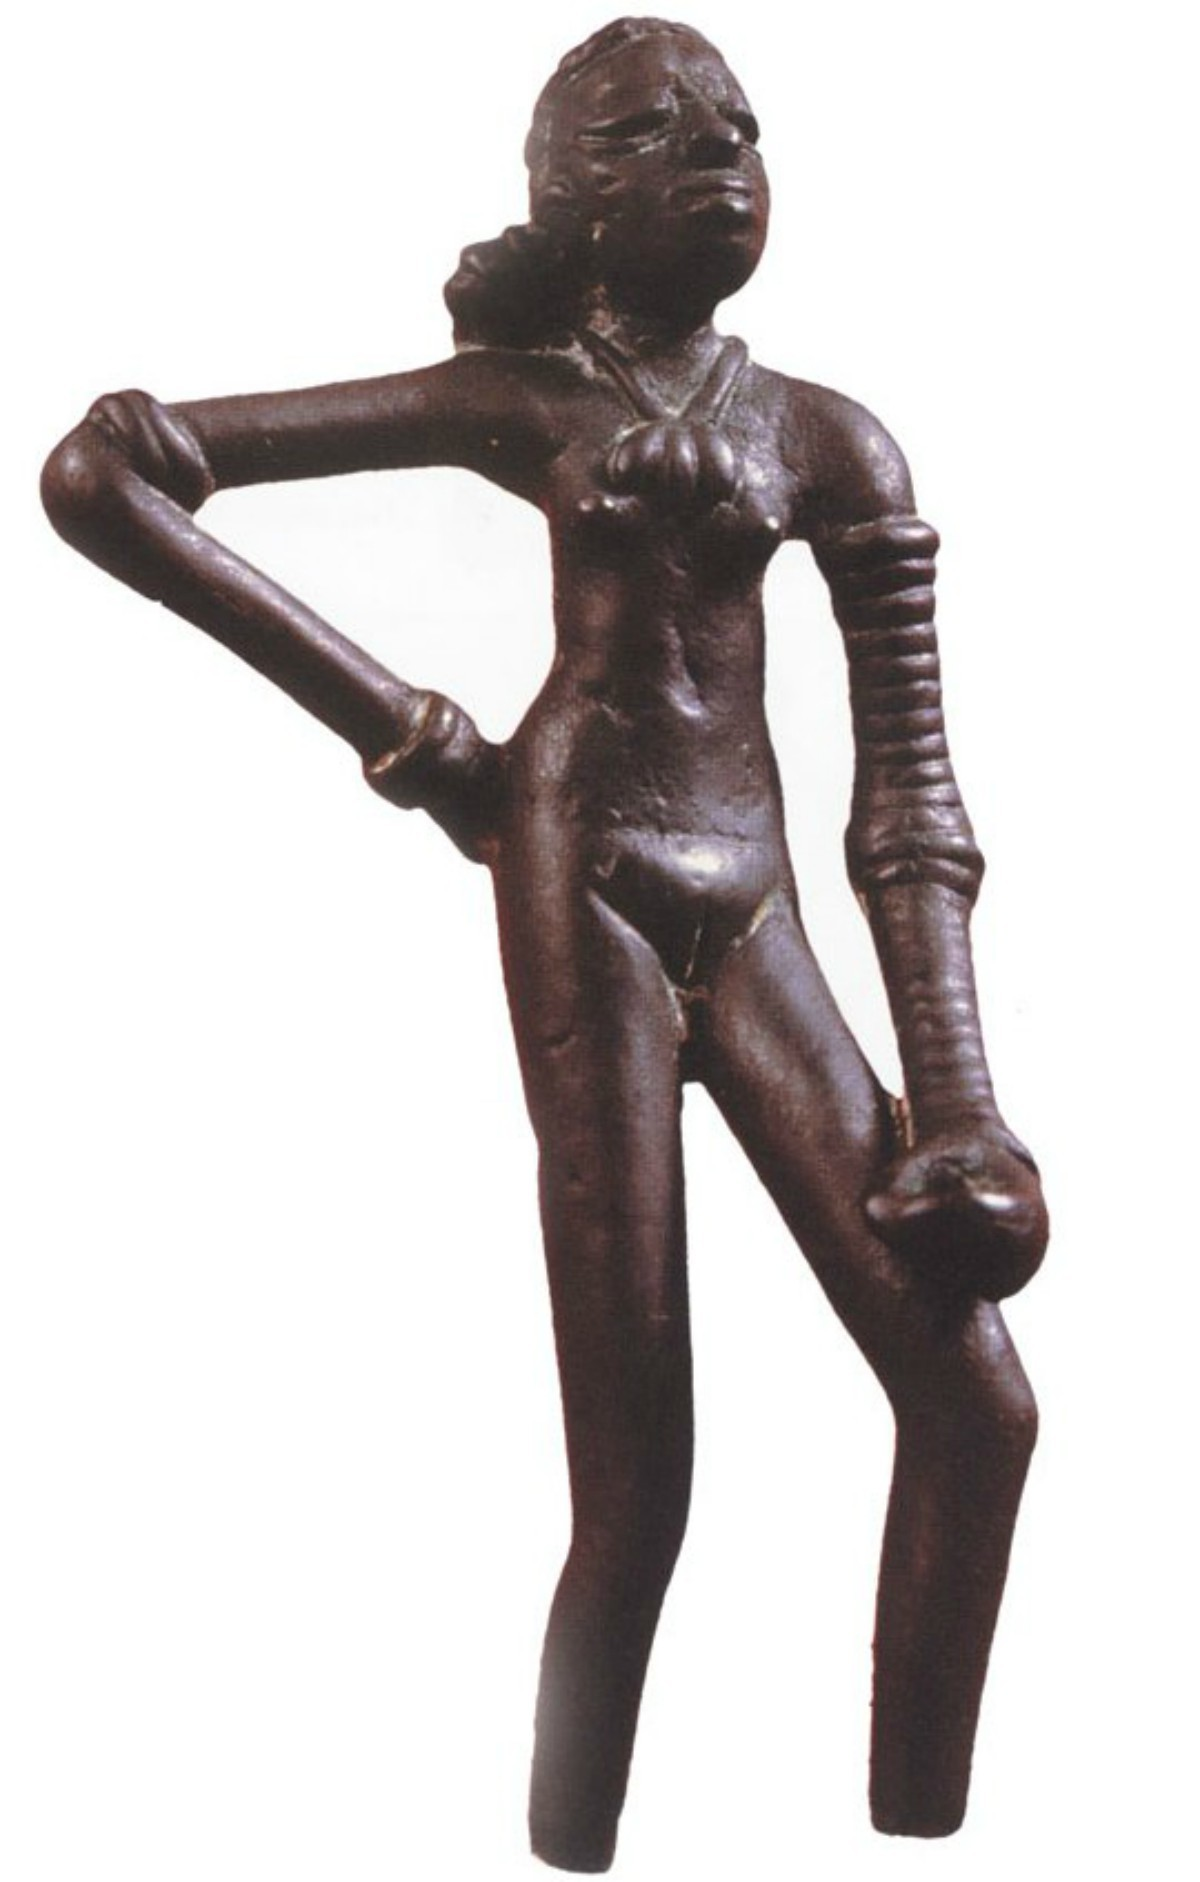 Dancing Girl, on display at the National Museum in New Delhi